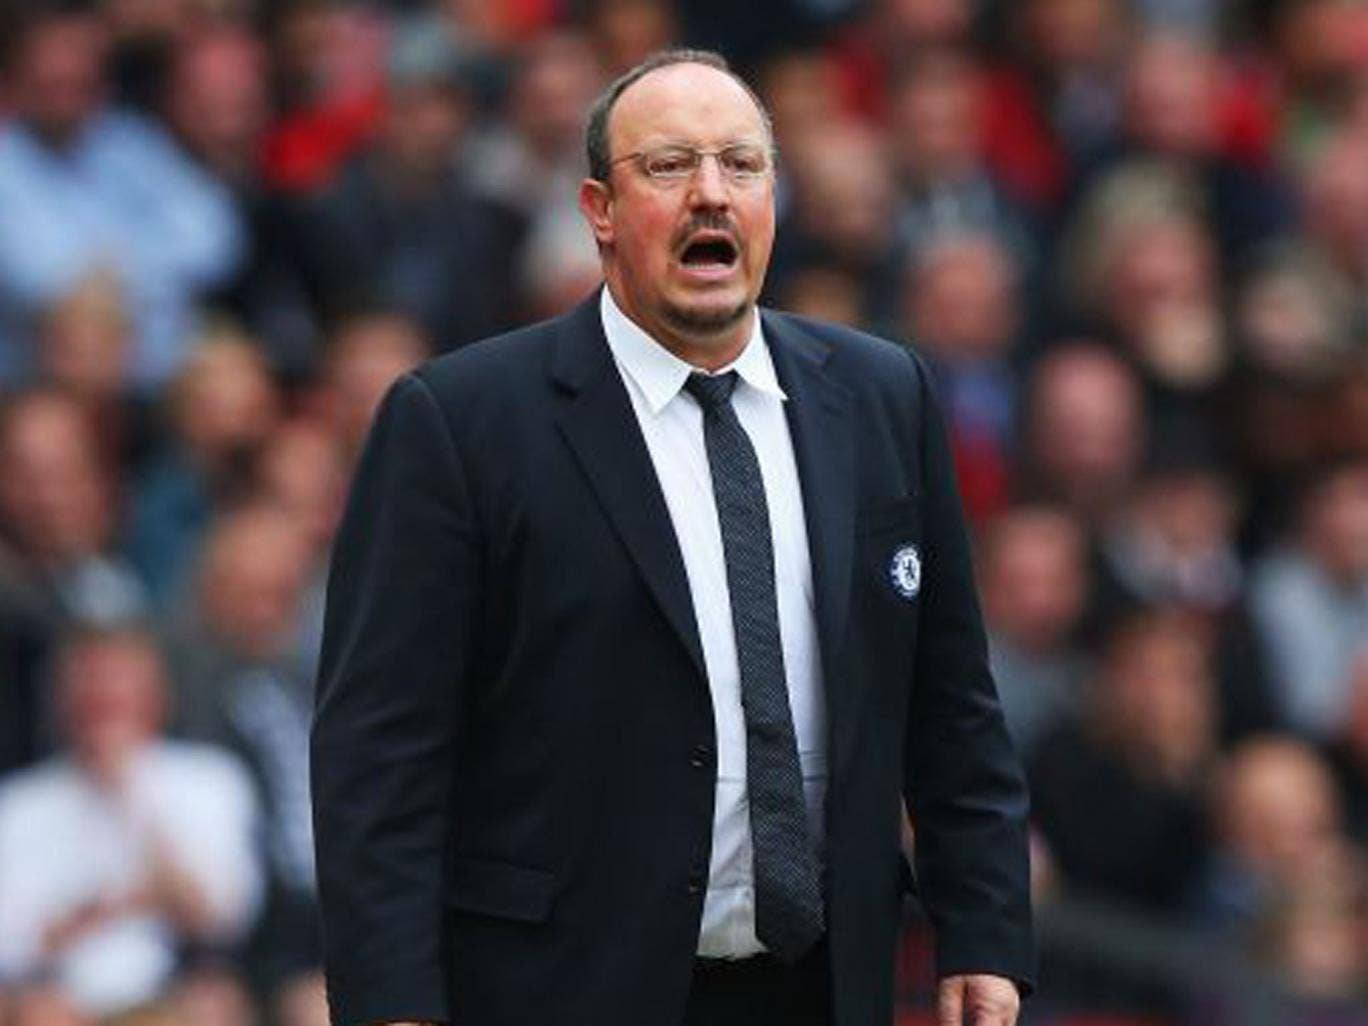 """Rafa Benitez, the Chelsea manager, called the win a """"massive result"""" for the club as the edged closer to securing the Champions' League qualification he was tasked with delivering (Alex Livesey/Getty Images)"""